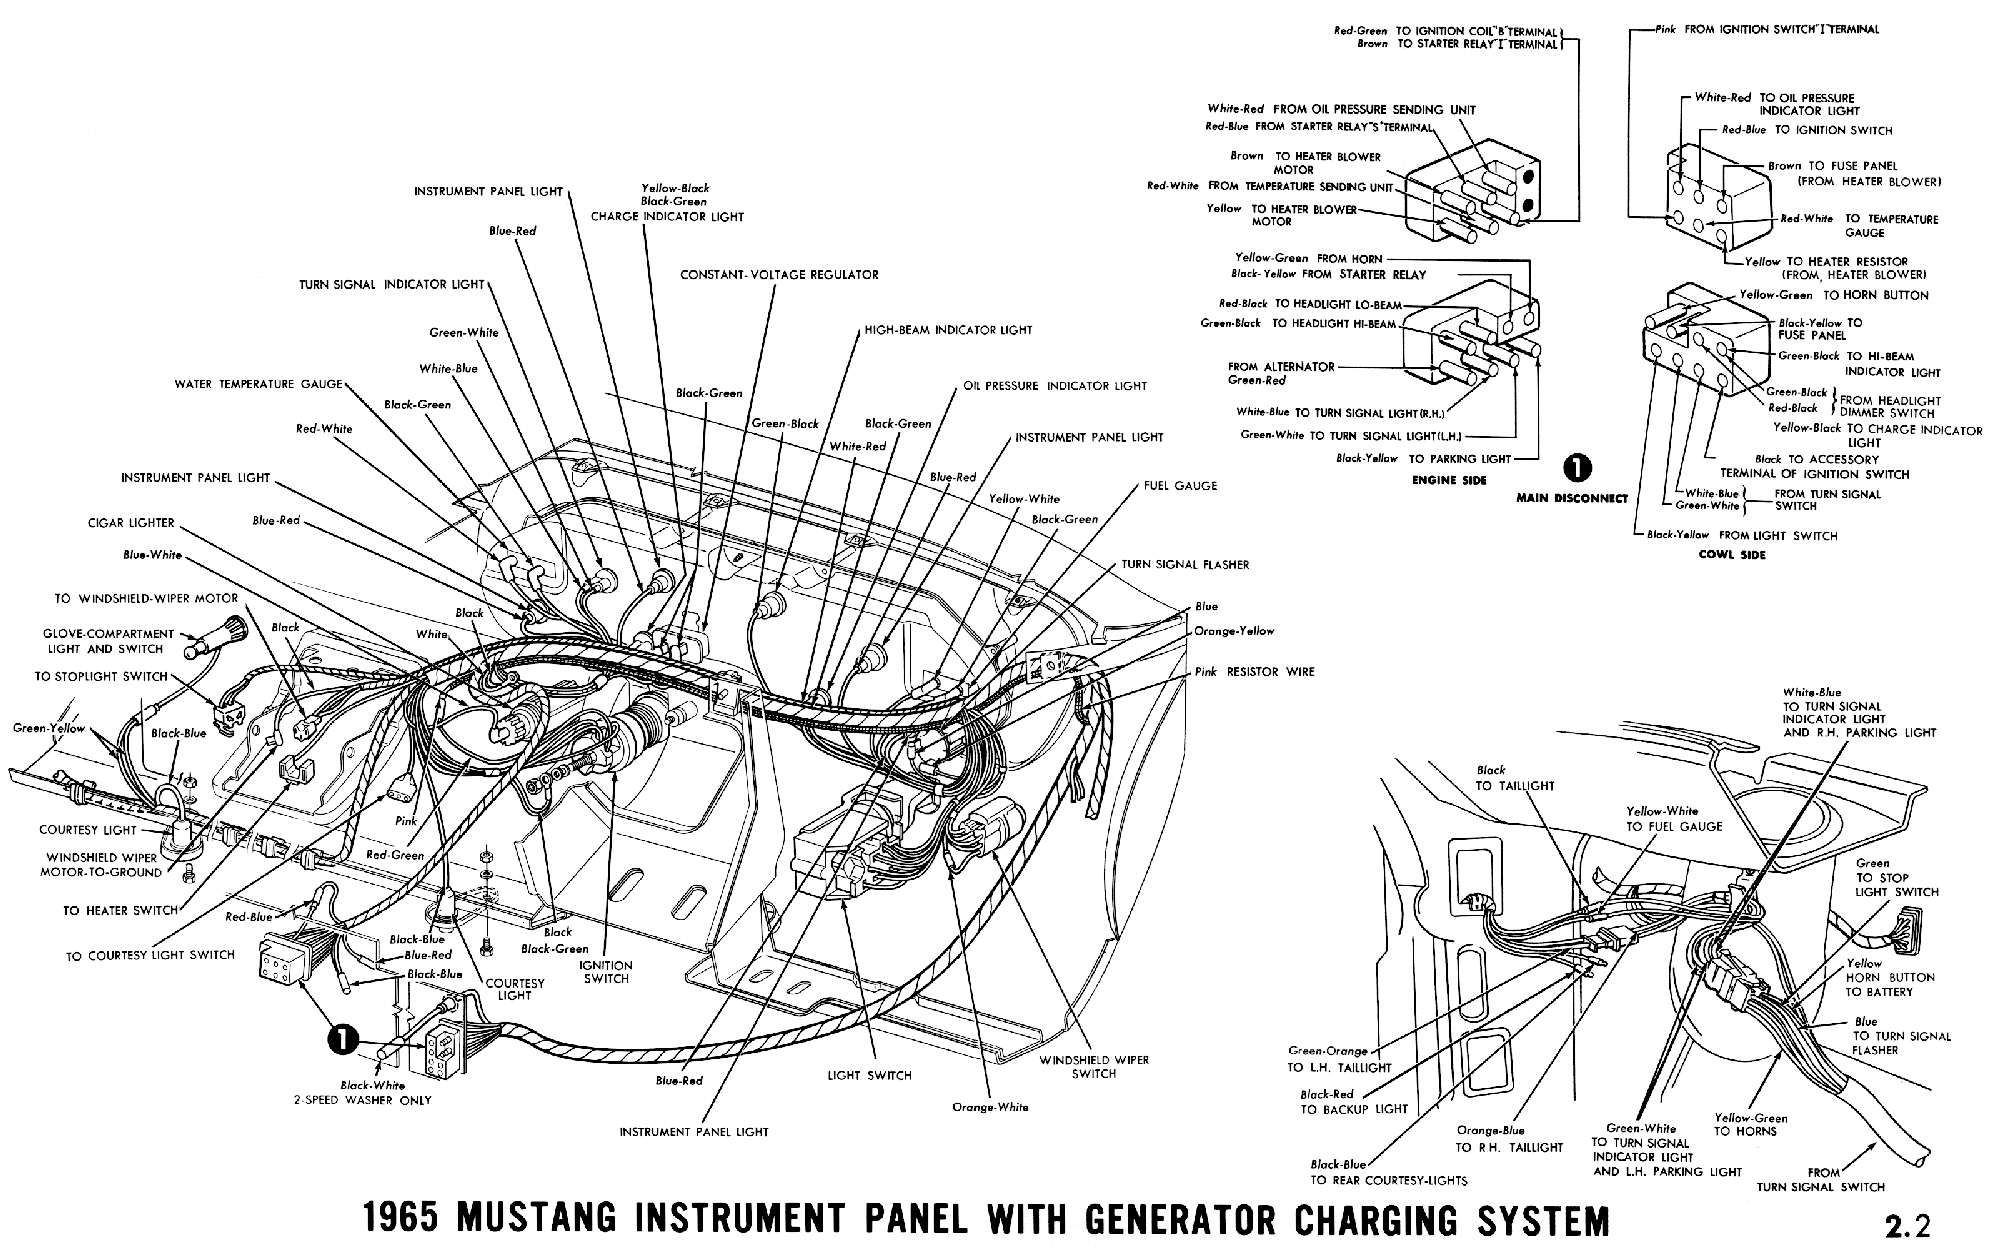 1965 mustang wiring diagrams automotive repair 1965 mustang1965 mustang instrument panel with alternator charging system pictorial instrument cluster connections, wiper switch,